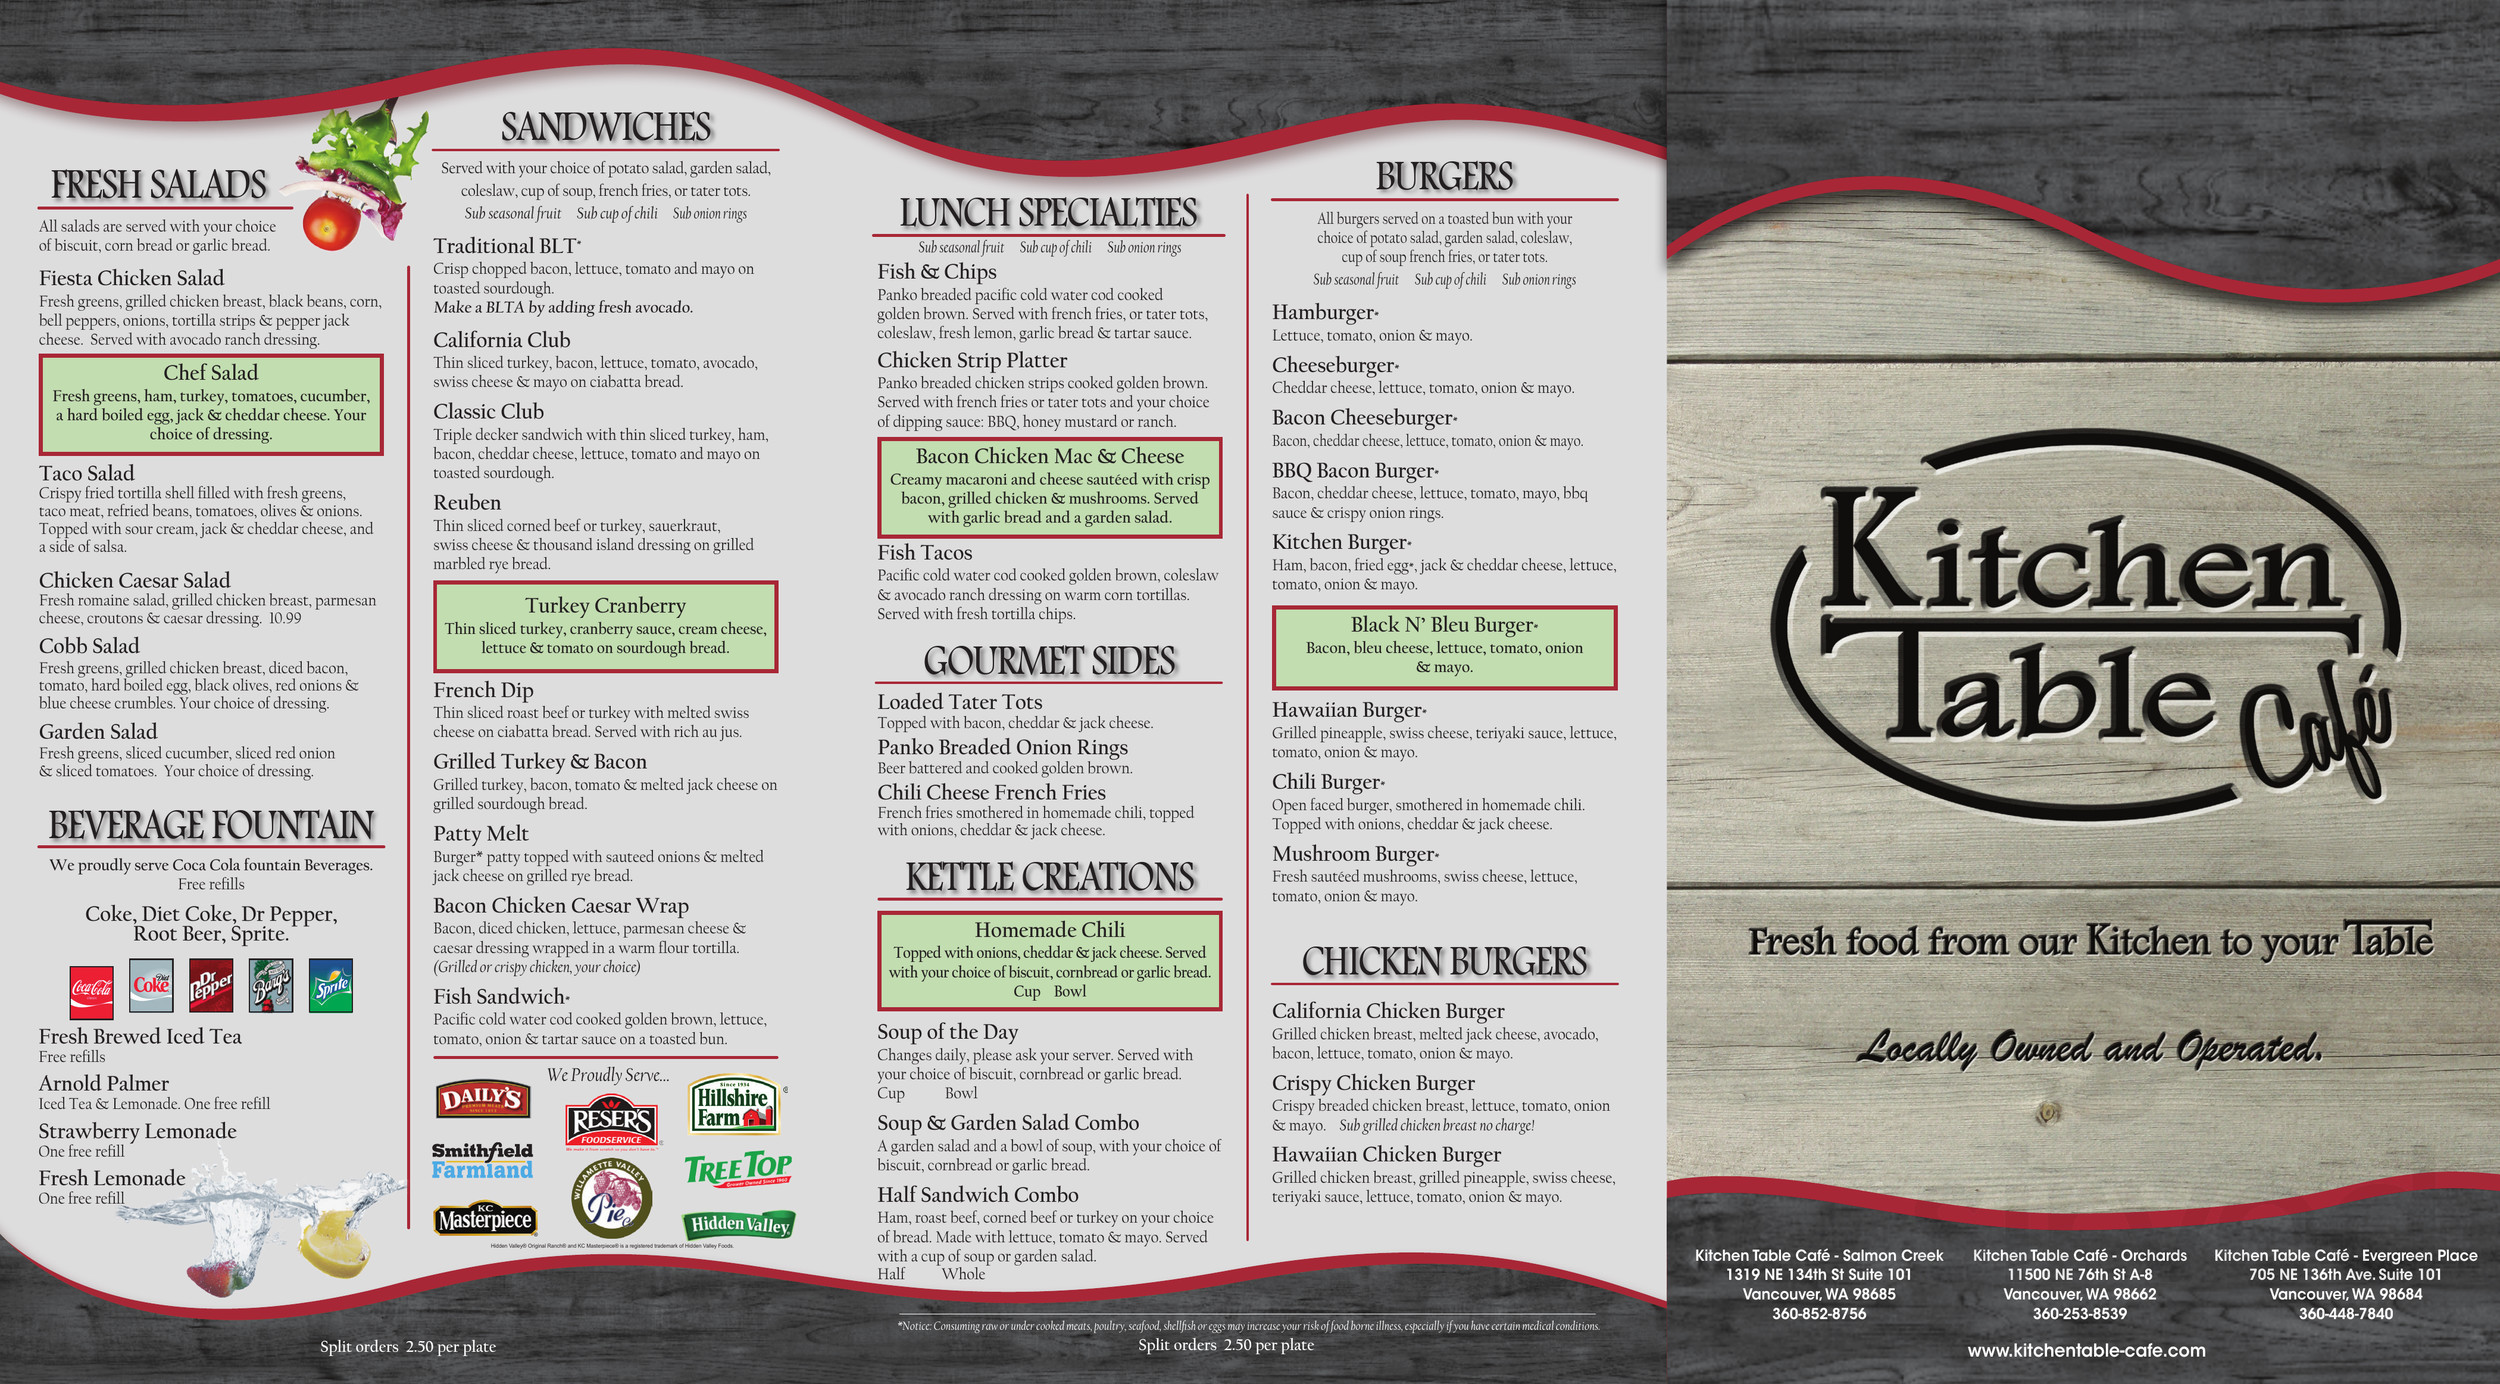 Kitchen Table Cafe- Orchards menu in Vancouver, Washington